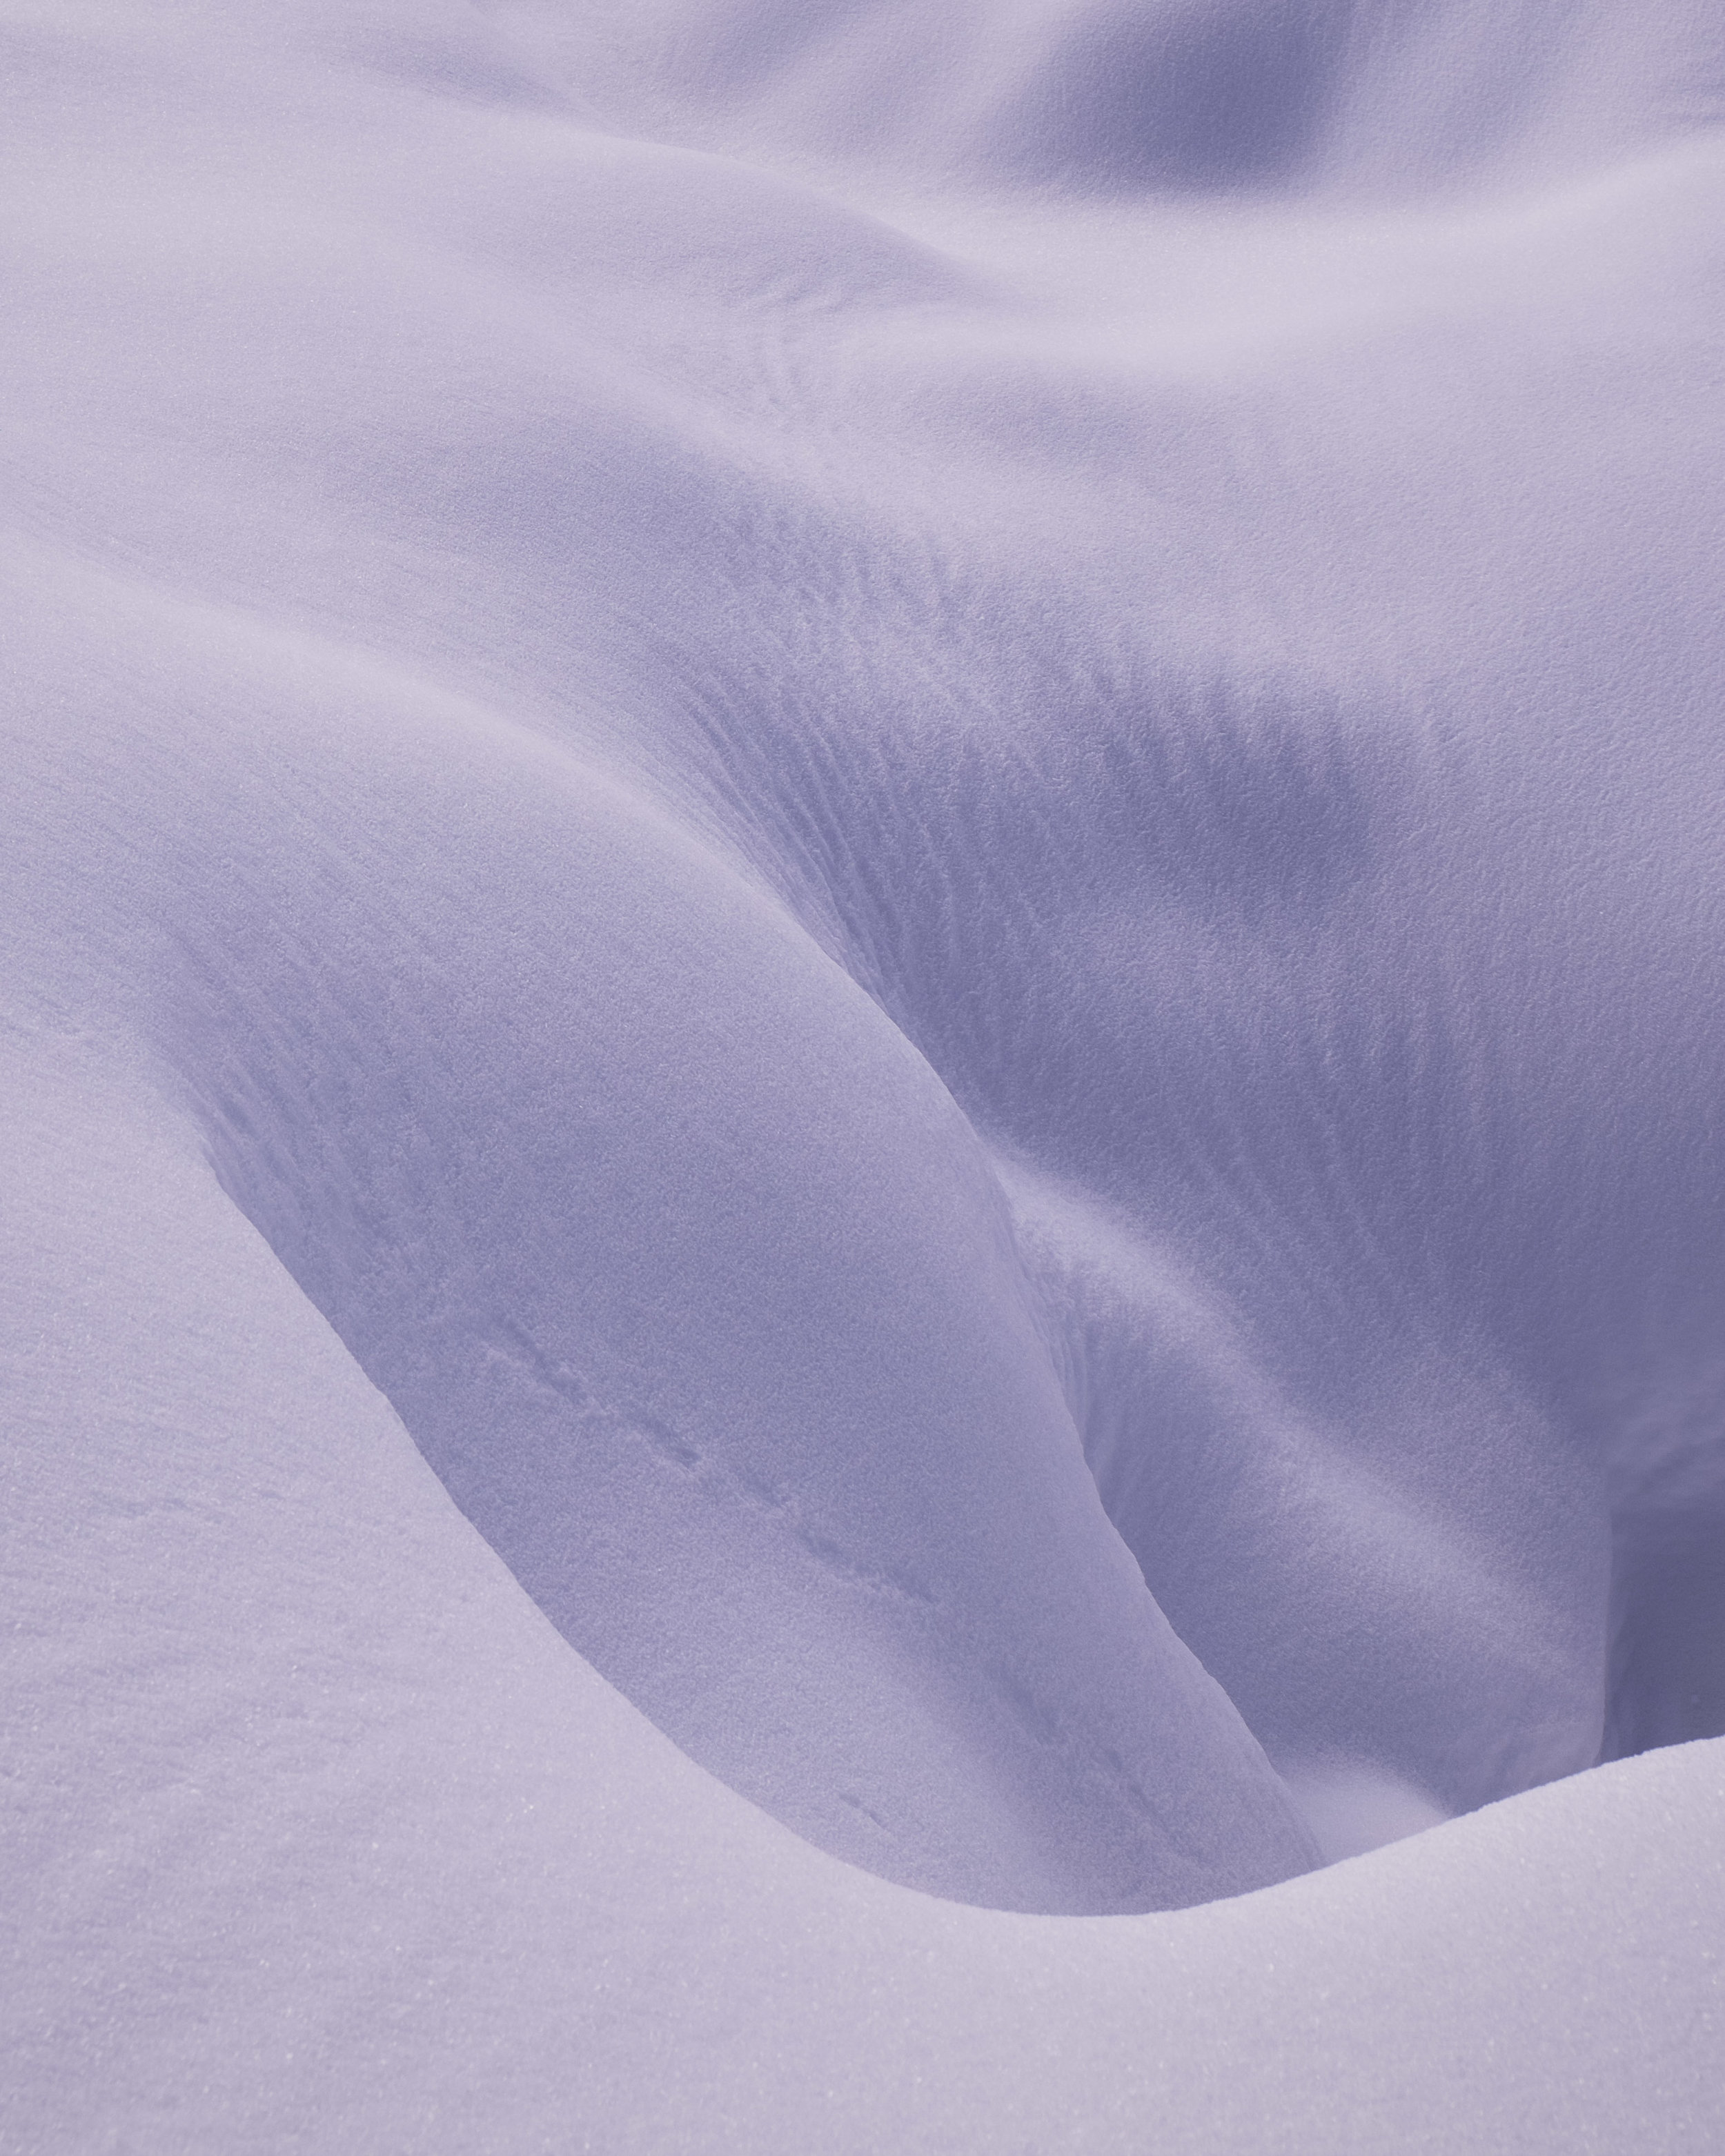 2400m  Finally, there was nothing left than pure snow. It was the total expression of winter. I loved the abstract lines in the snow and tried to arrange them in compelling composition. 35mm, f5.6, 1/420s, Fuji X-T1